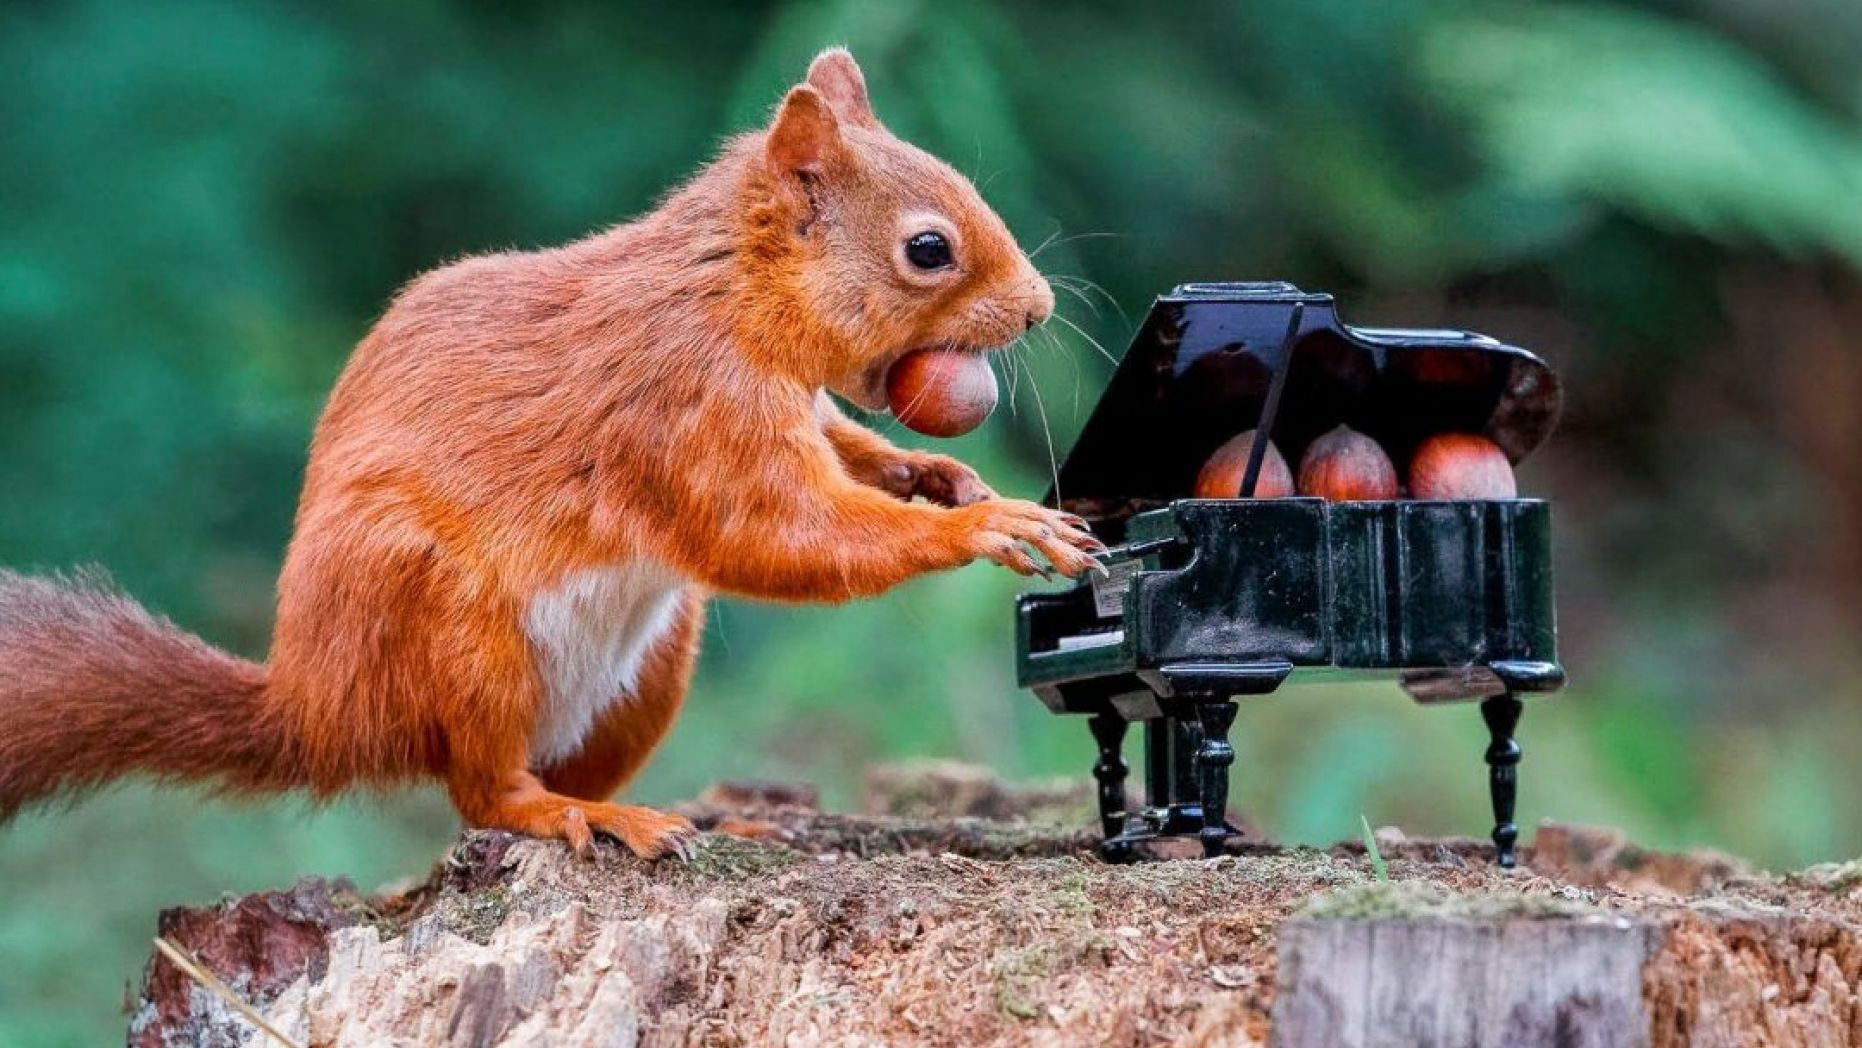 Squirrel playing piano